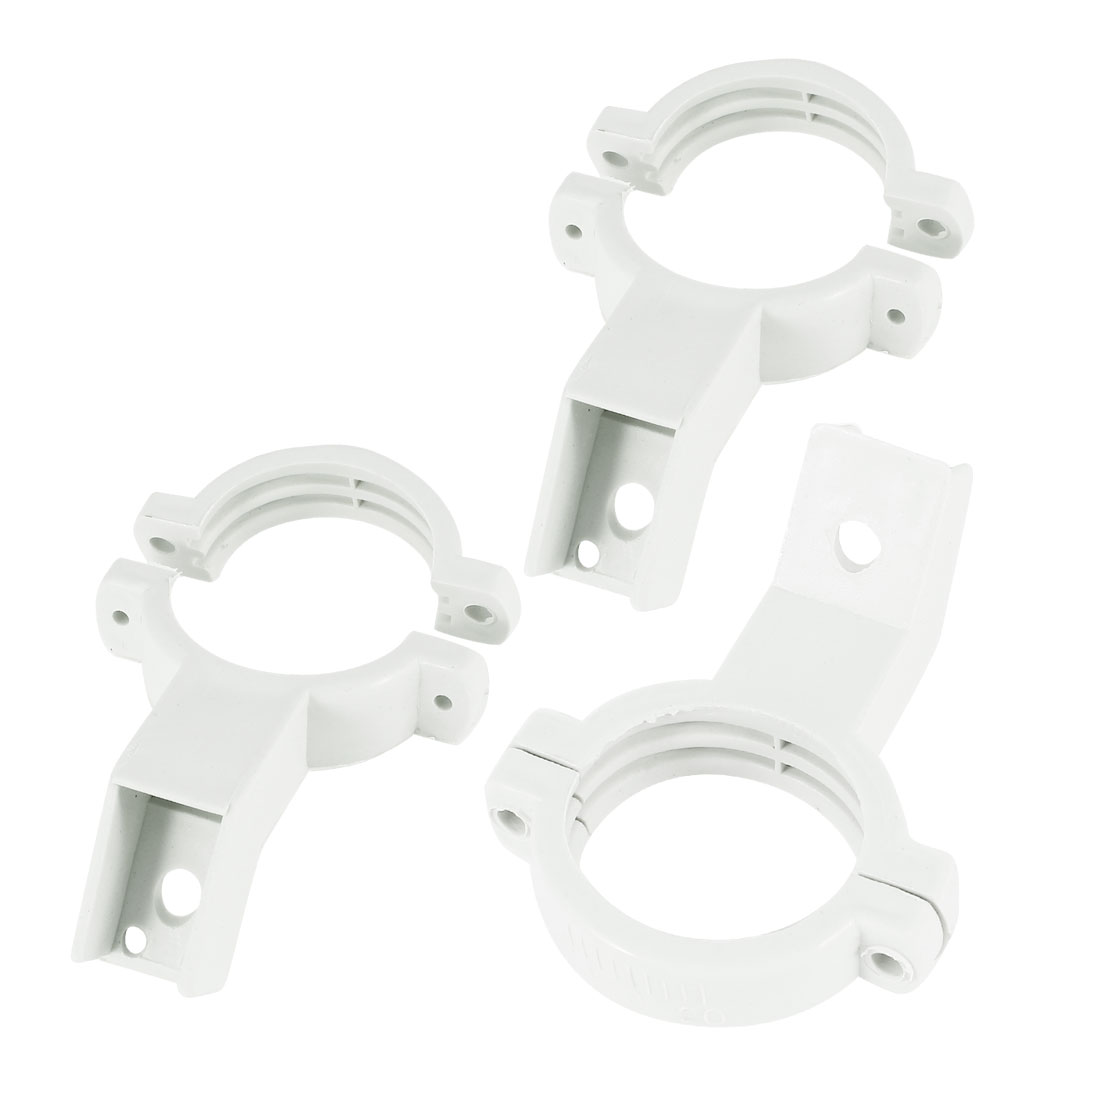 3 Pcs 40mm Plastic Single Dish LNB Bracket Holder Mount White for Ku Band